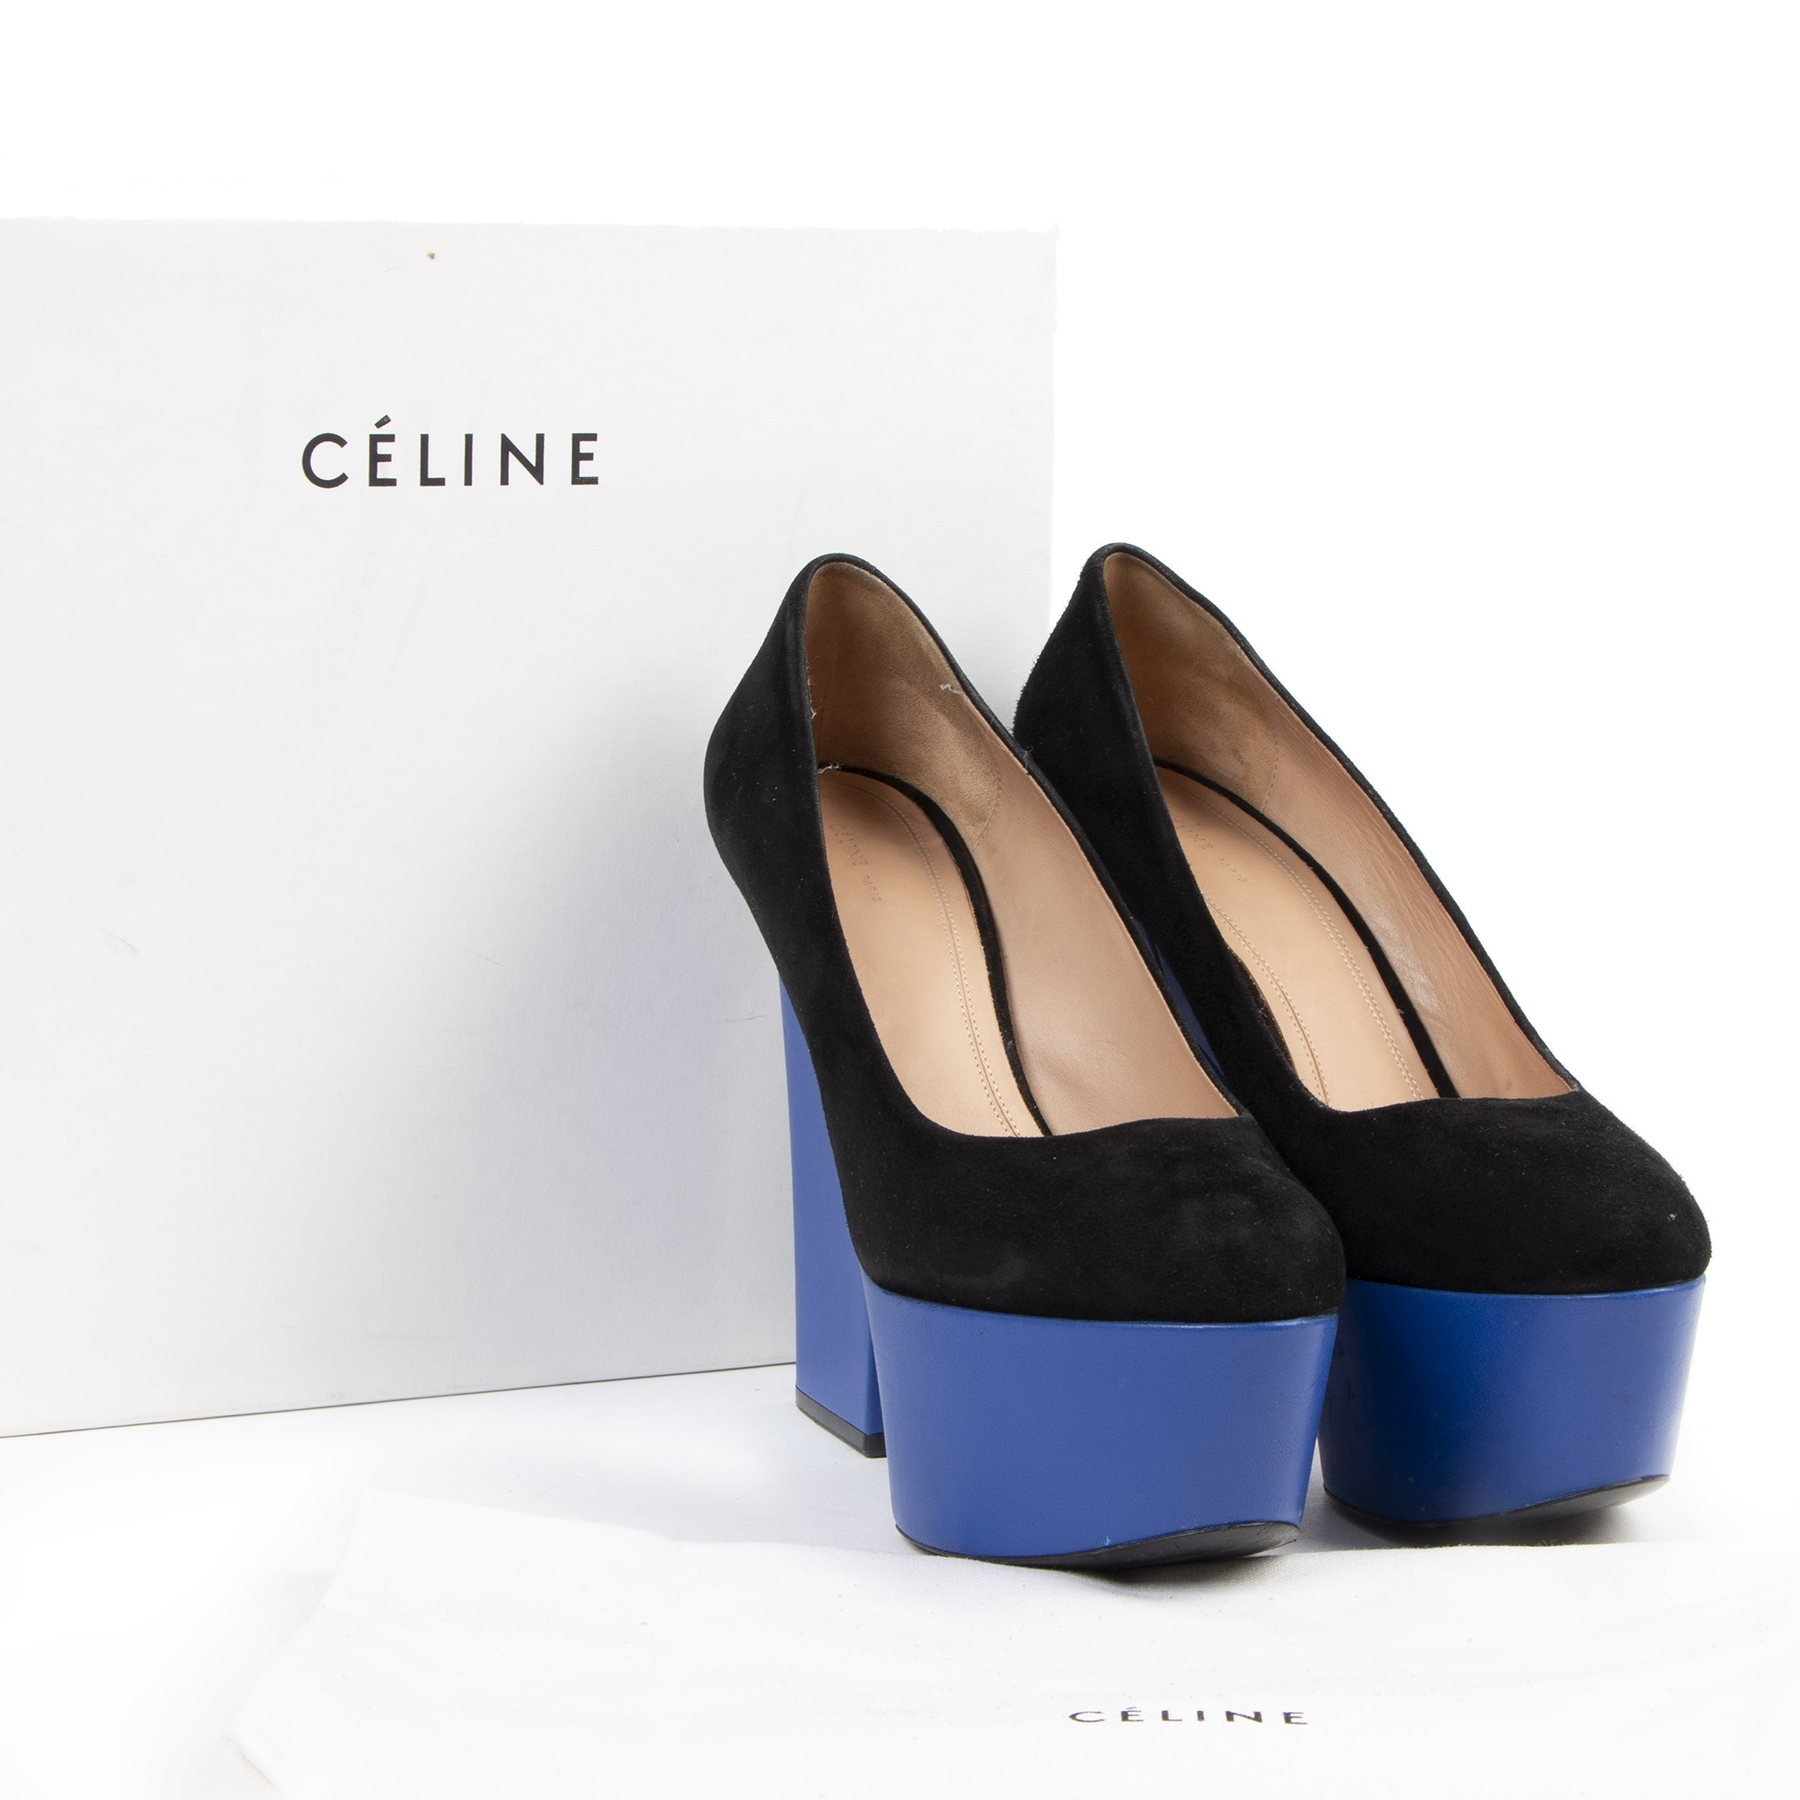 Authentic secondhand Céline 90 Multiples Pumps - Size 40 designer shoes pumps platform heels designer accessories fashion luxury vintage webshop safe secure online shopping worldwide shipping designer high end brands